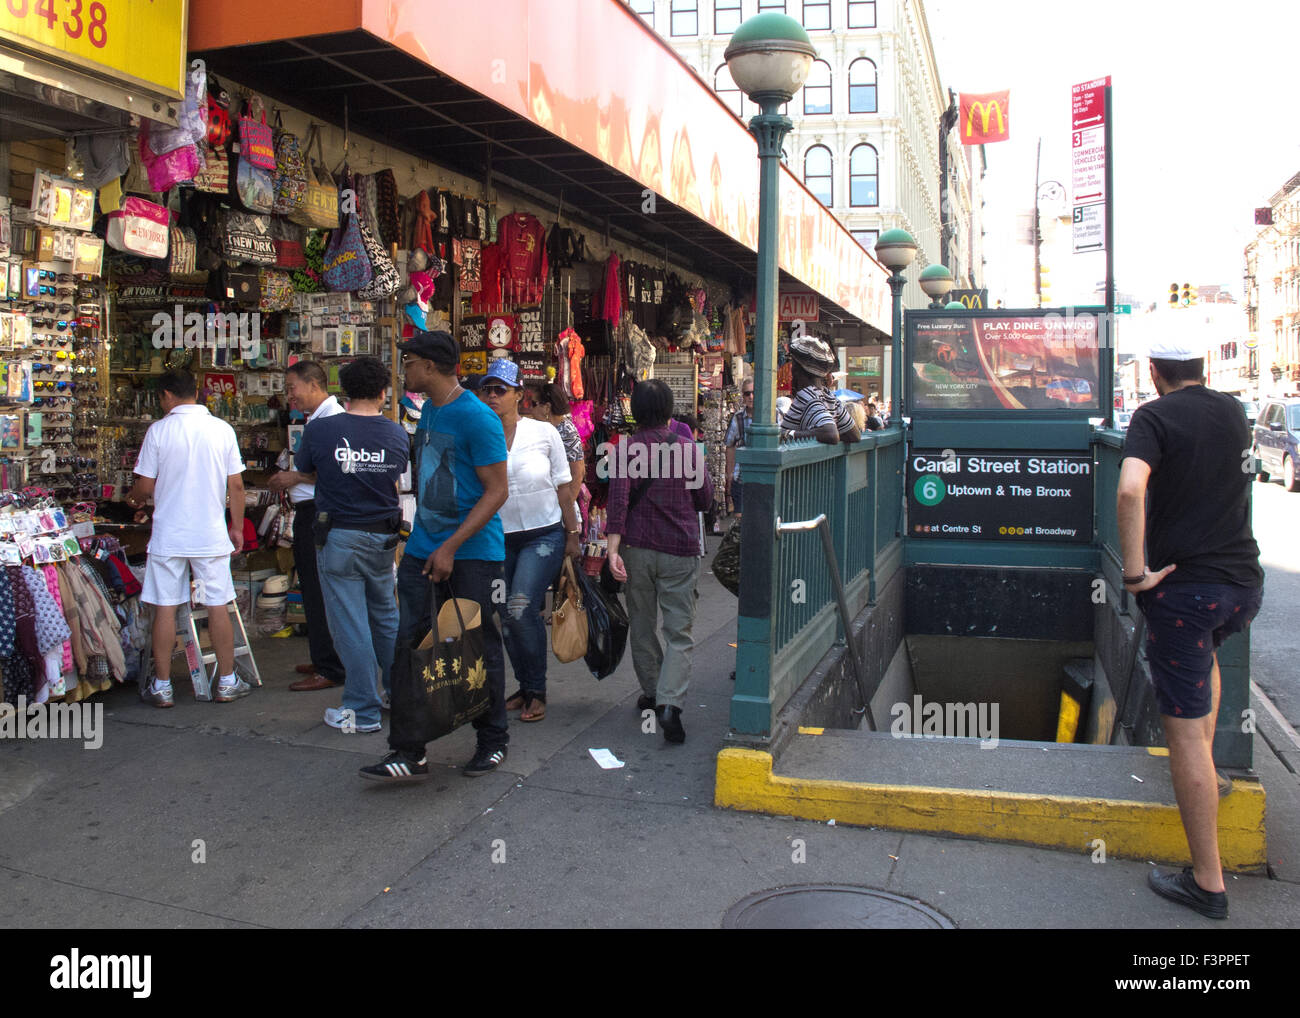 Canal Street New York Stock Photos   Canal Street New York Stock ... 1fd35be3b32f4